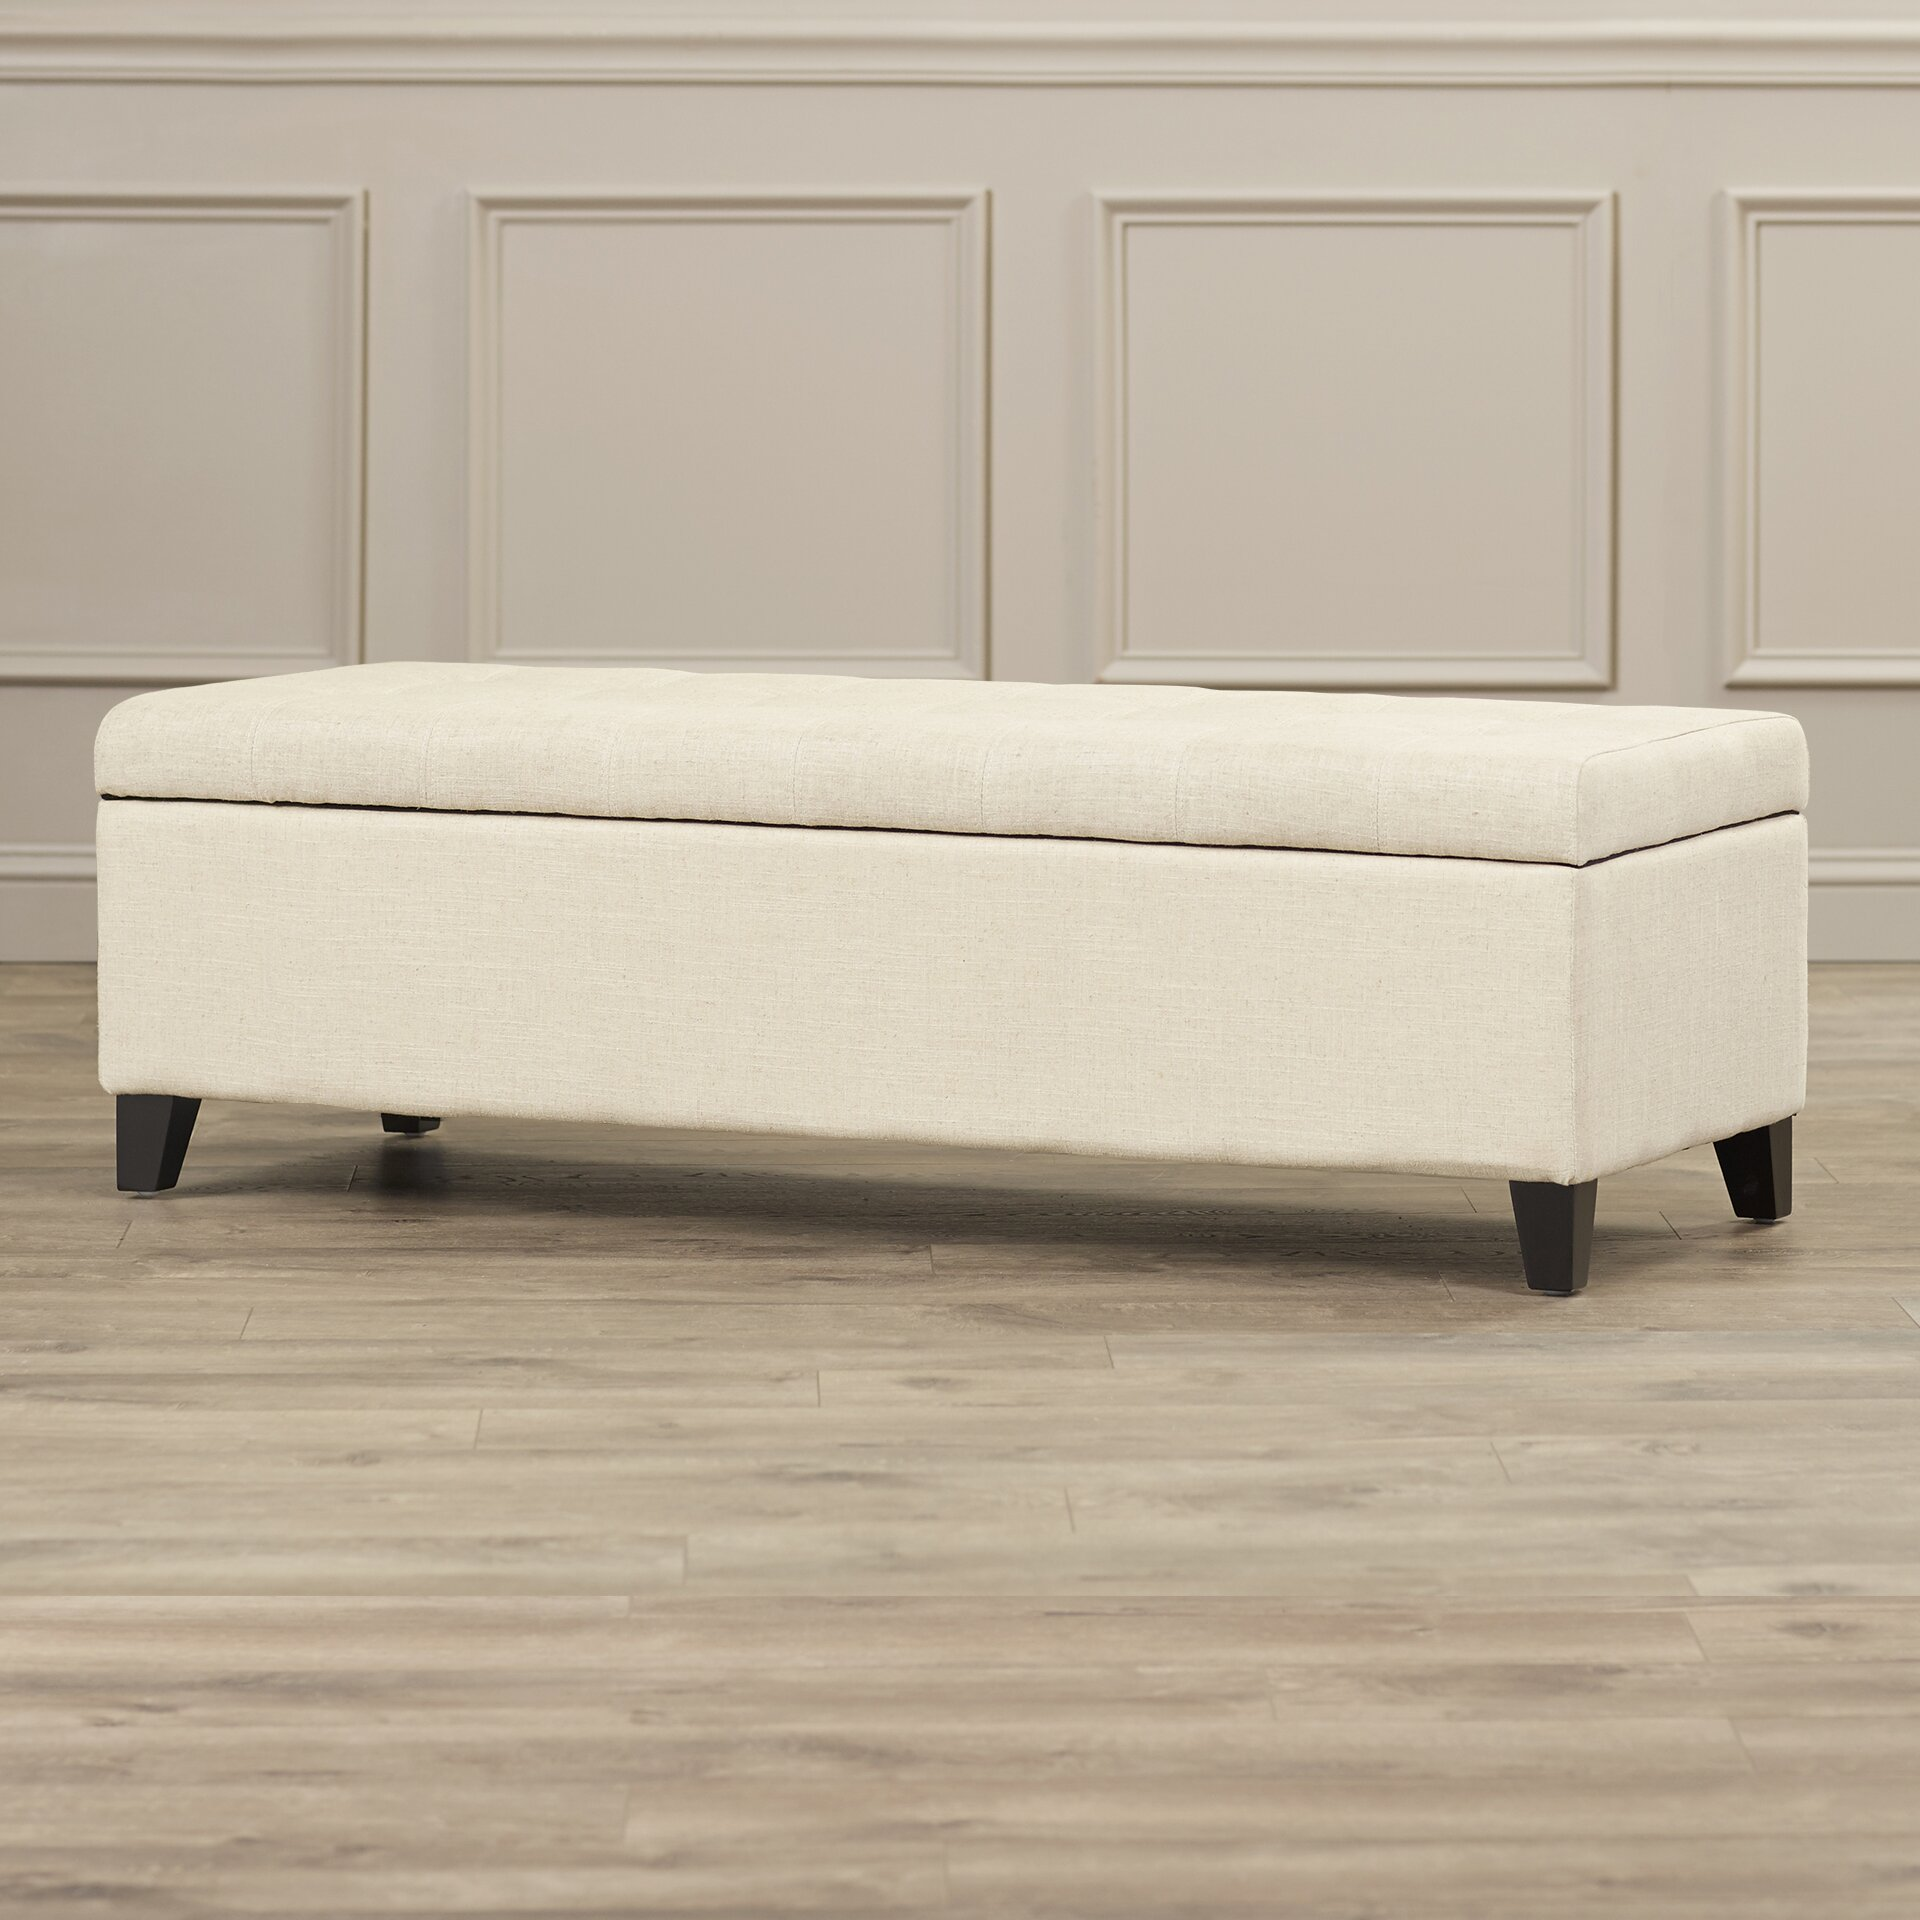 Darby Home Co Foosland Tufted Upholstered Storage Ottoman